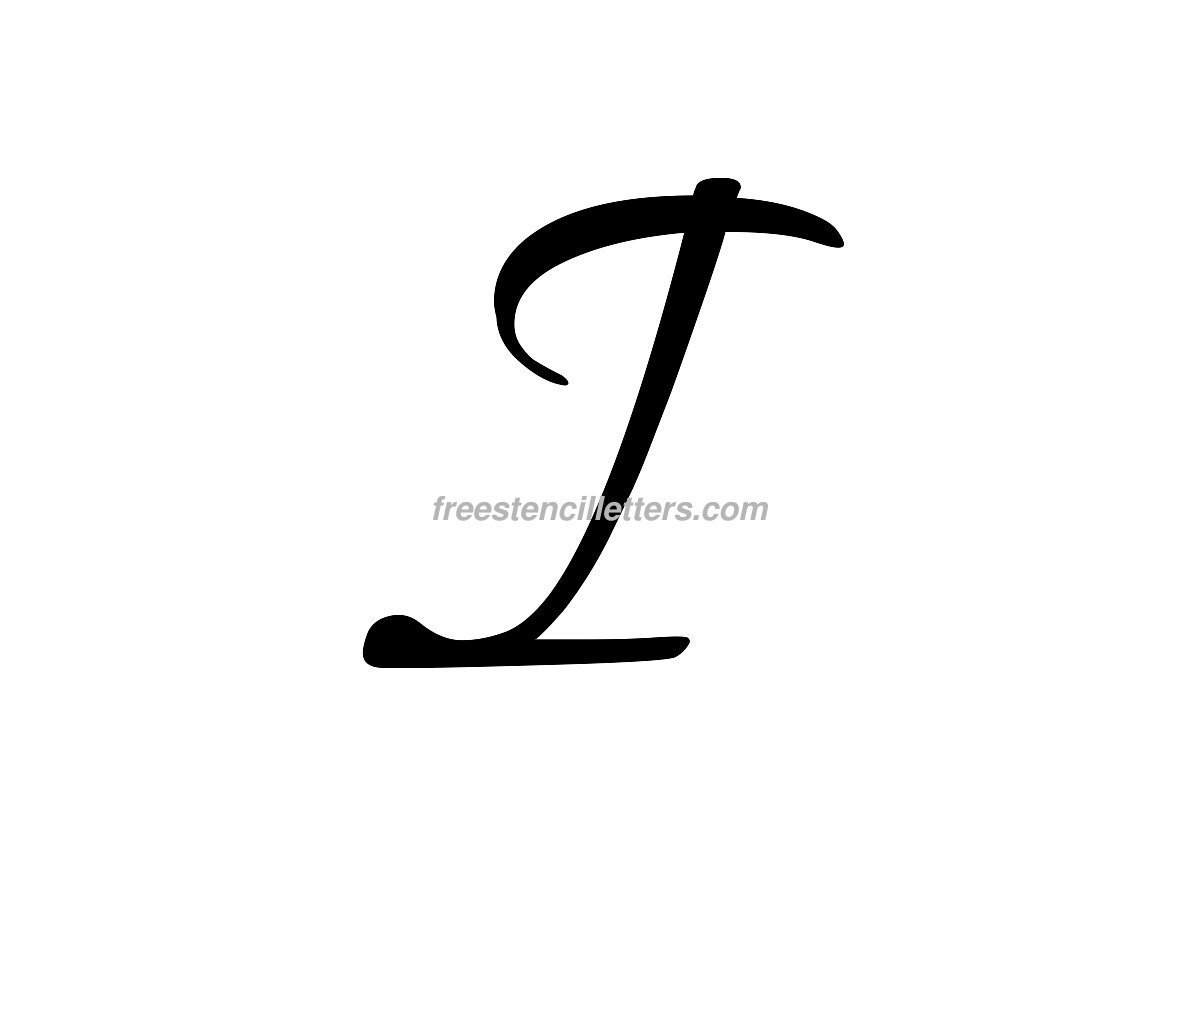 Worksheet The Letter I In Cursive i cursive laptuoso laptuoso